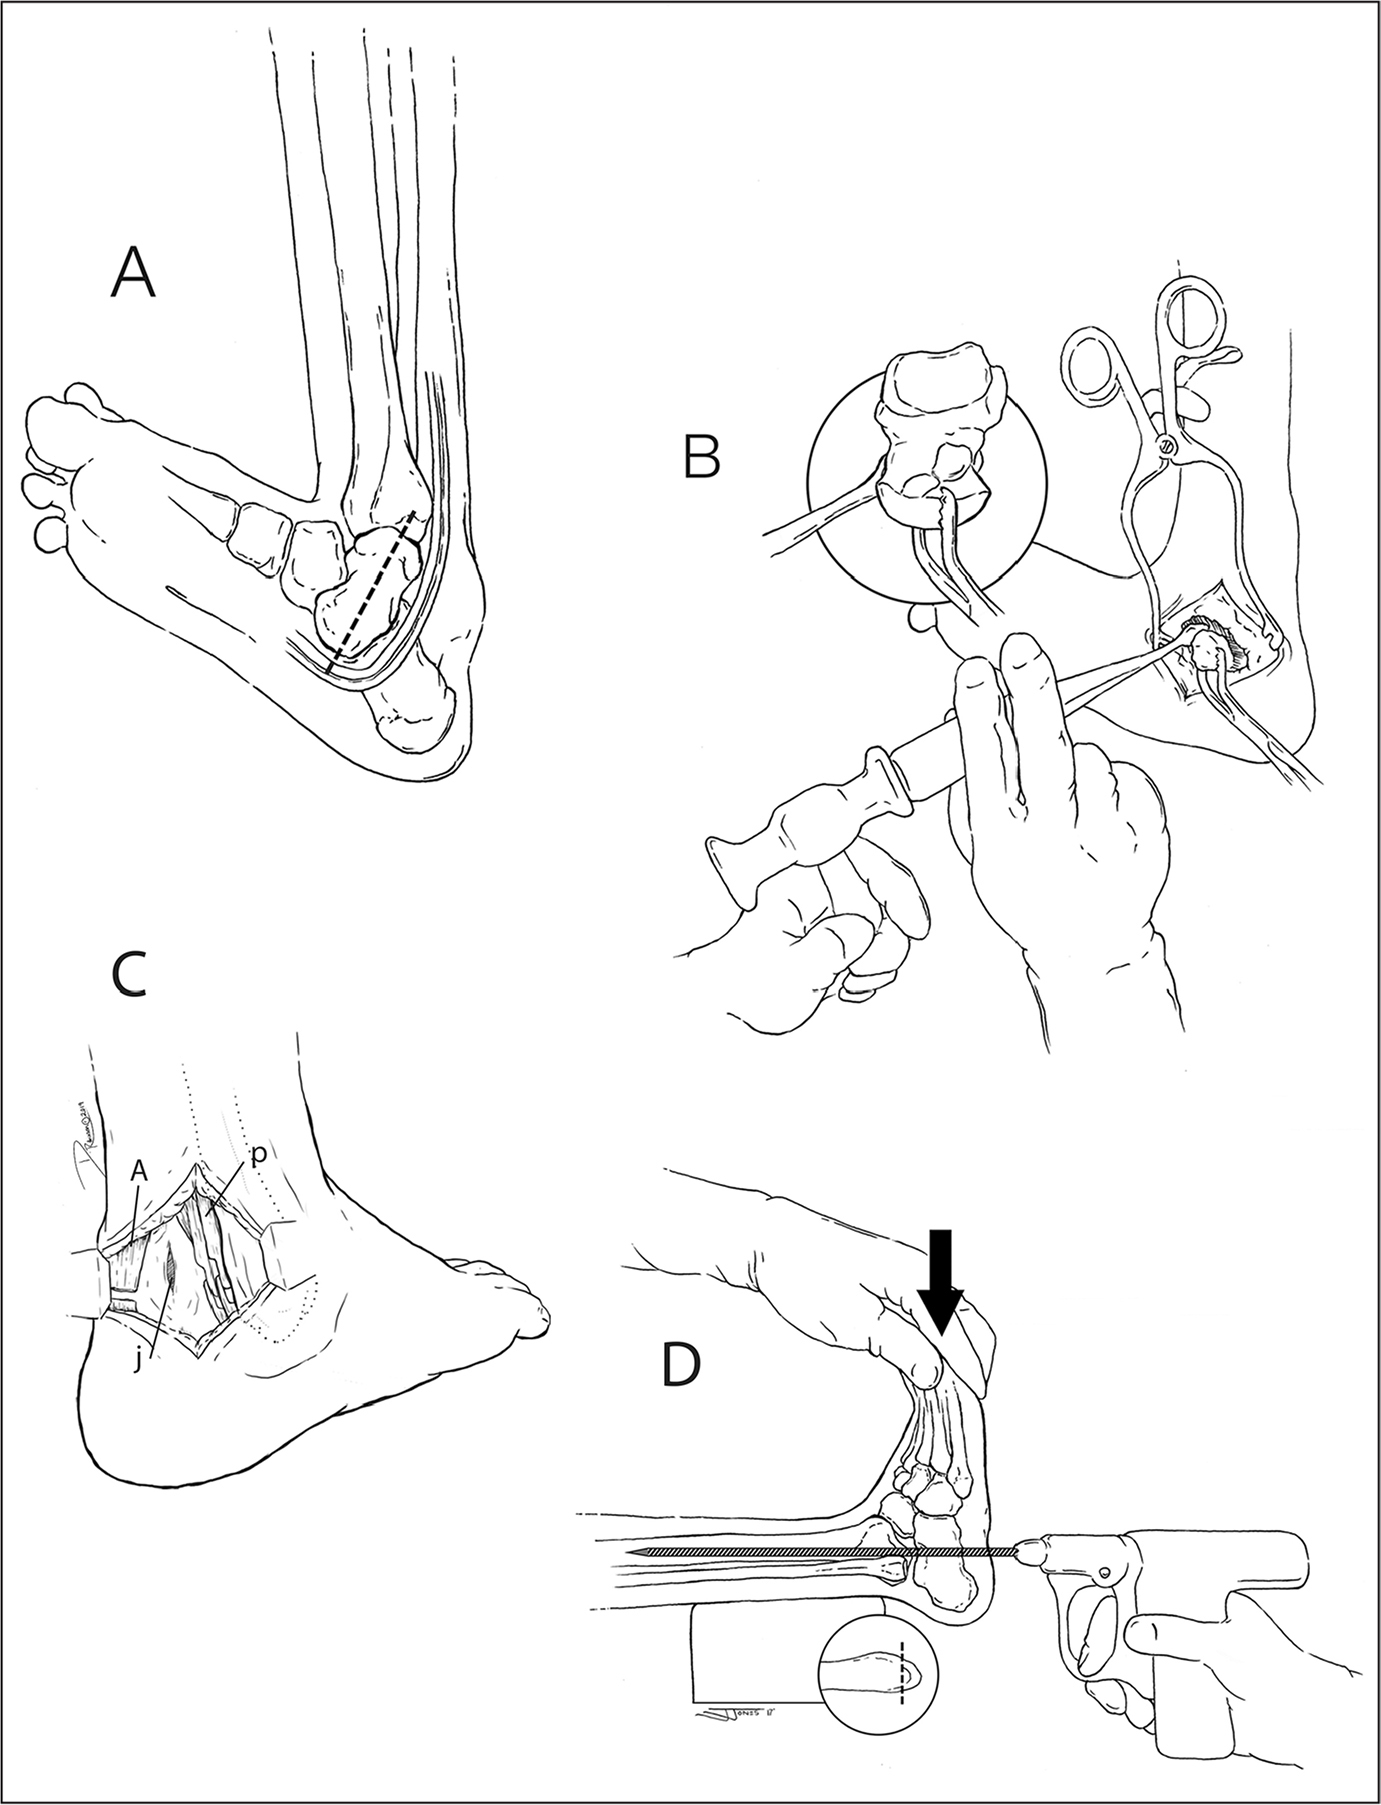 Illustration of the medial surgical approach (A). Skin incision (broken line) along the long axis of the vertical talus. Note the neurovascular structures adjacent to the talar head. Removal of the talus with the aid of a towel clamp and an elevator. Insert shows a close-up of talus removal (B). Posterolateral ankle incision. Achilles 1-cm excision tenotomy (a), peroni tendons lengthening (p), and ankle joint arthrotomy (j) (C). Foot position in the ankle joint. Arrow indicates the posterior displacement of the foot to create a heel. A Steinmann pin is placed retrograde across the ankle joint to hold the neutrally positioned foot in place. Insert shows distal excision of fibula bone (D). (© Danielle Robinson. Used with permission.)